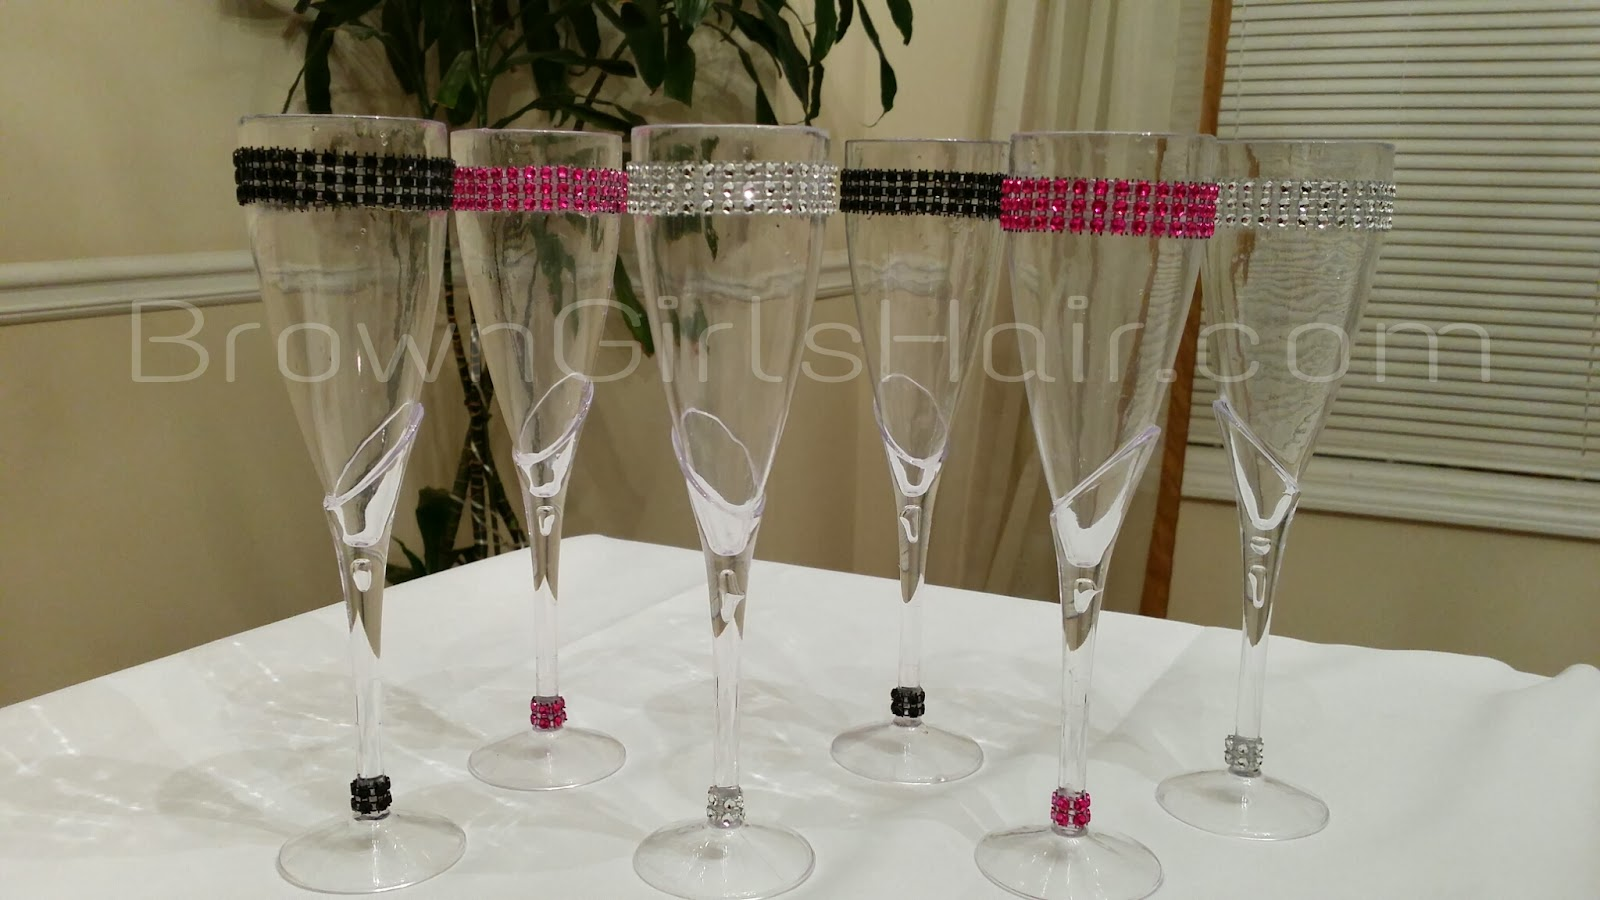 Brown Girls Hair Diy Bling Party Decorations Using Dollar Store